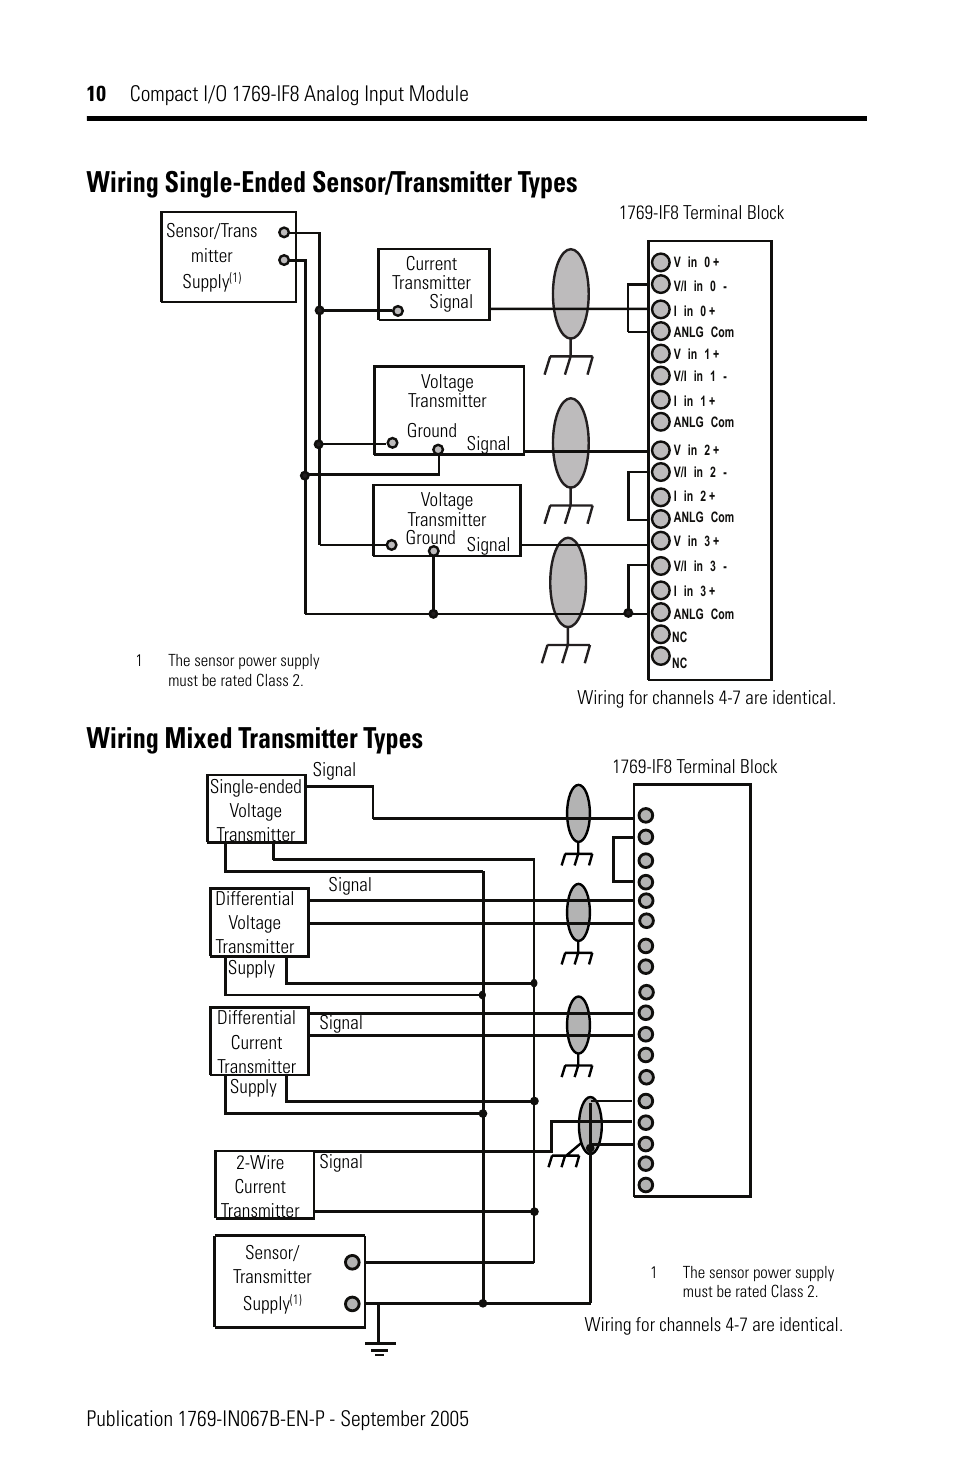 rockwell automation 1769 if8 compact 1769 if8 analog input module page10 1756 if8 wiring diagram 1756 if8 user manual \u2022 free wiring 1756 if6i wiring diagram at mifinder.co